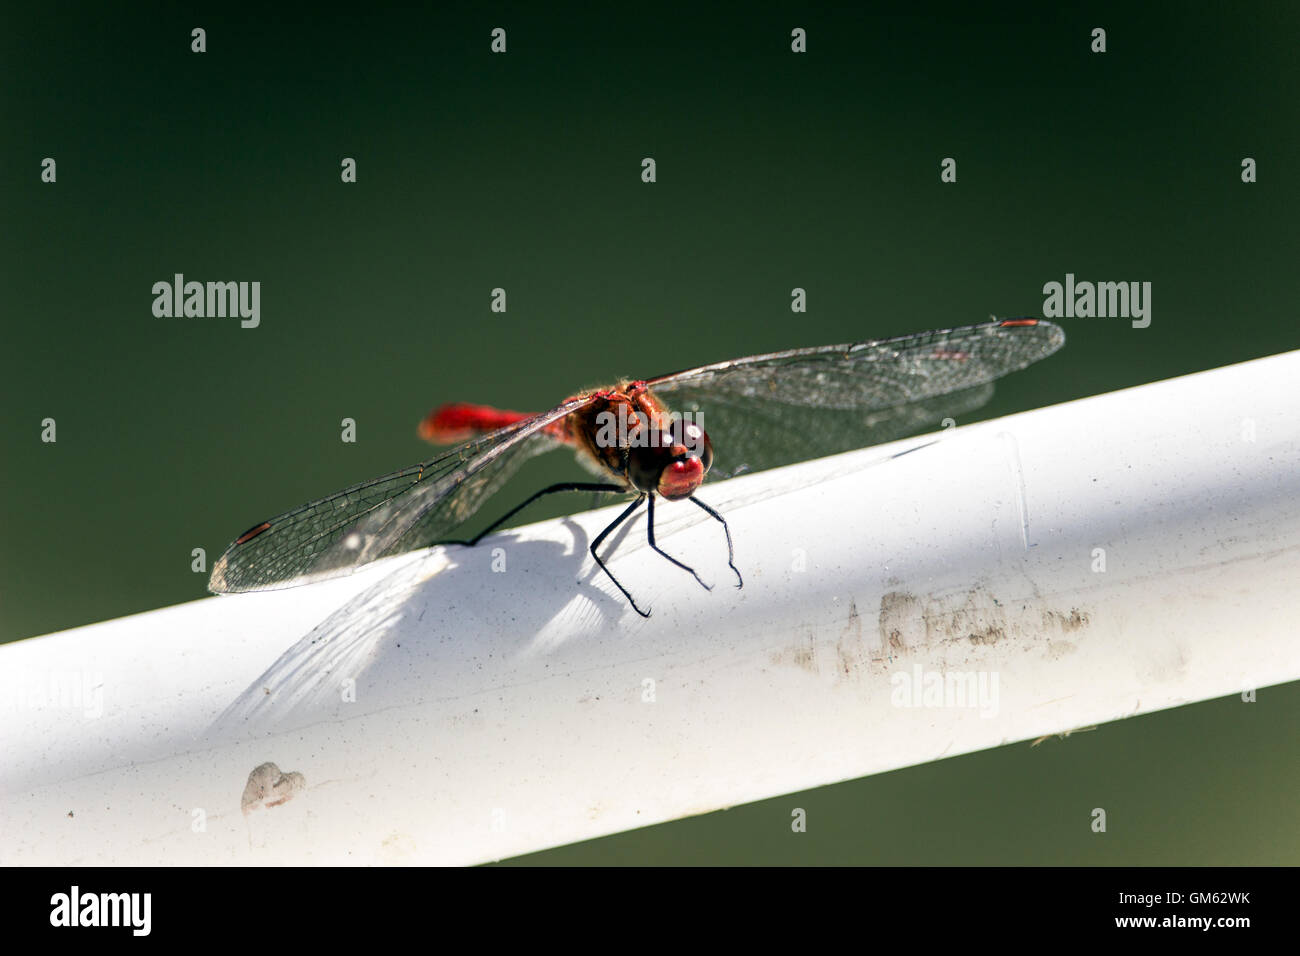 Belgrade, Serbia - Scarlet Dragonfly (Crocothemis erythraea) perched on a fishing boat fence Stock Photo